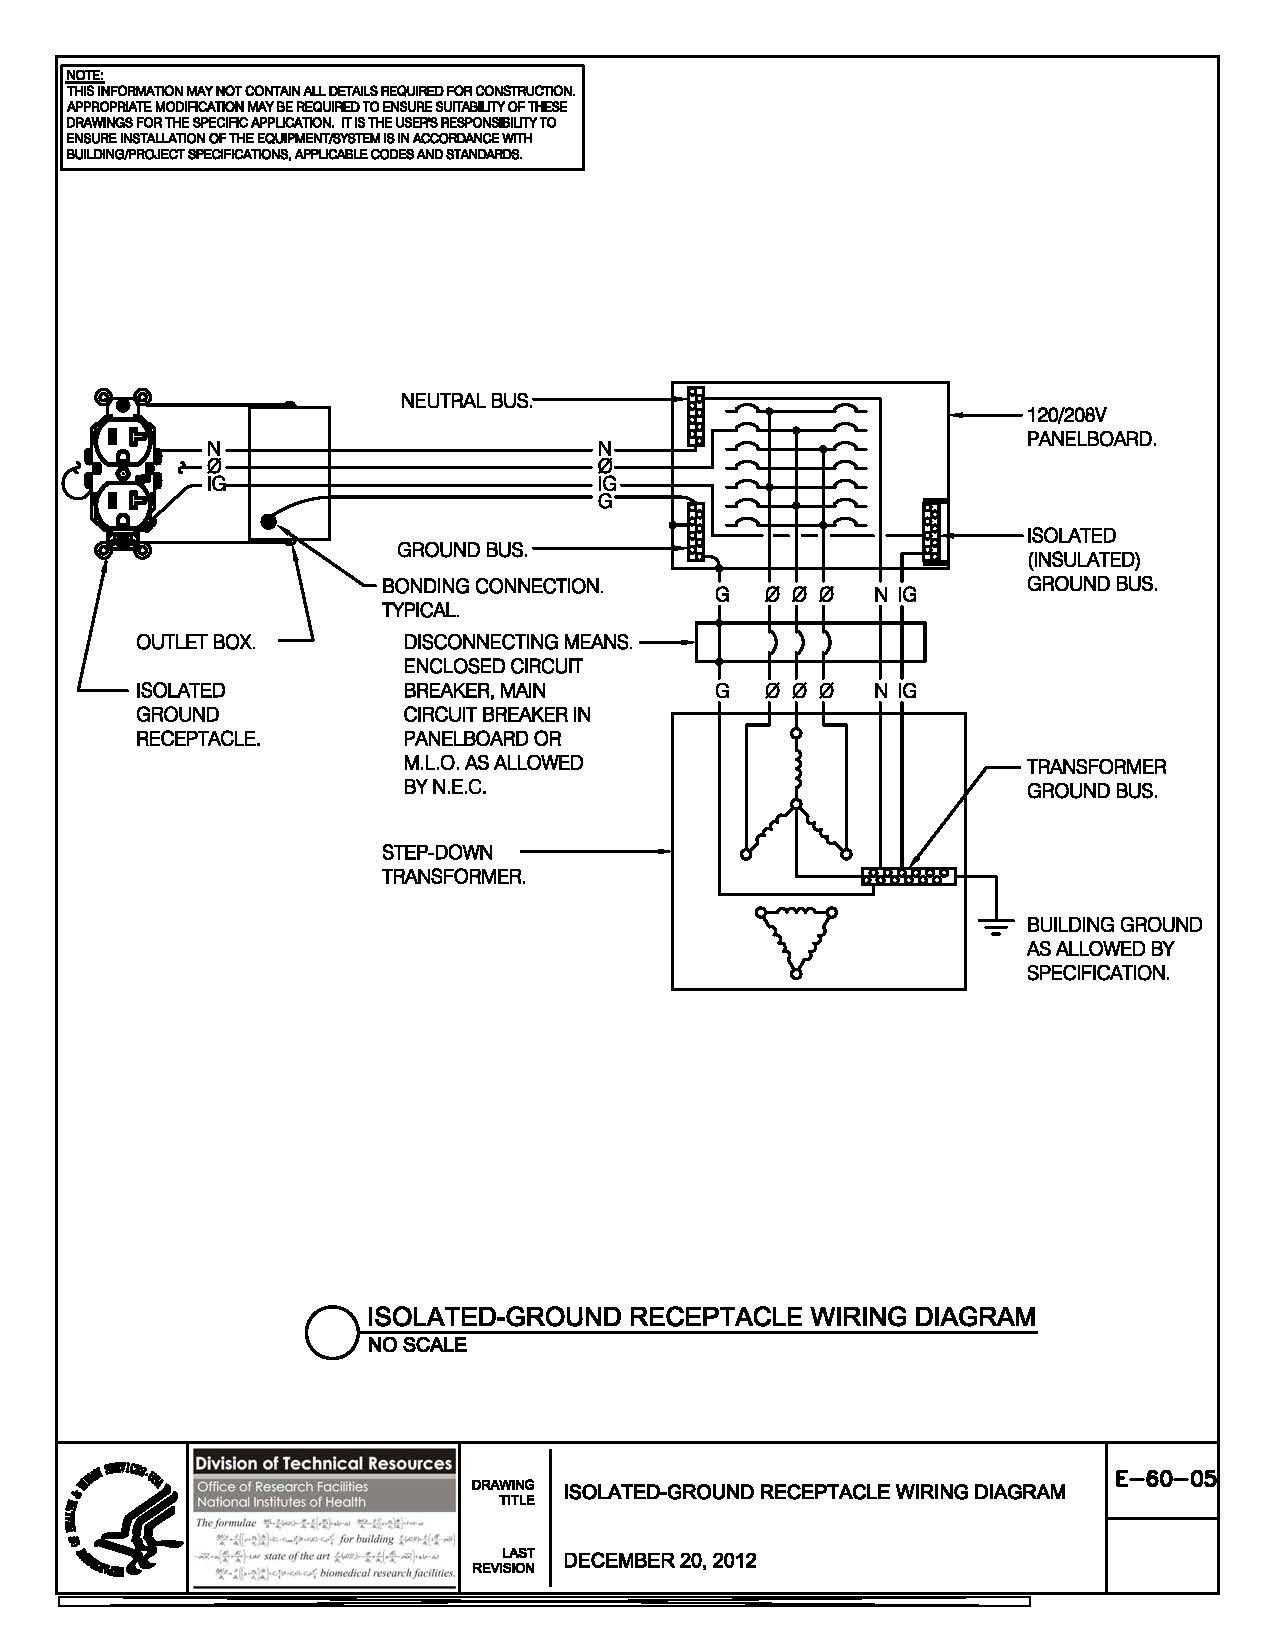 Electrical Panel Board Diagram Perfect Diagram Plc